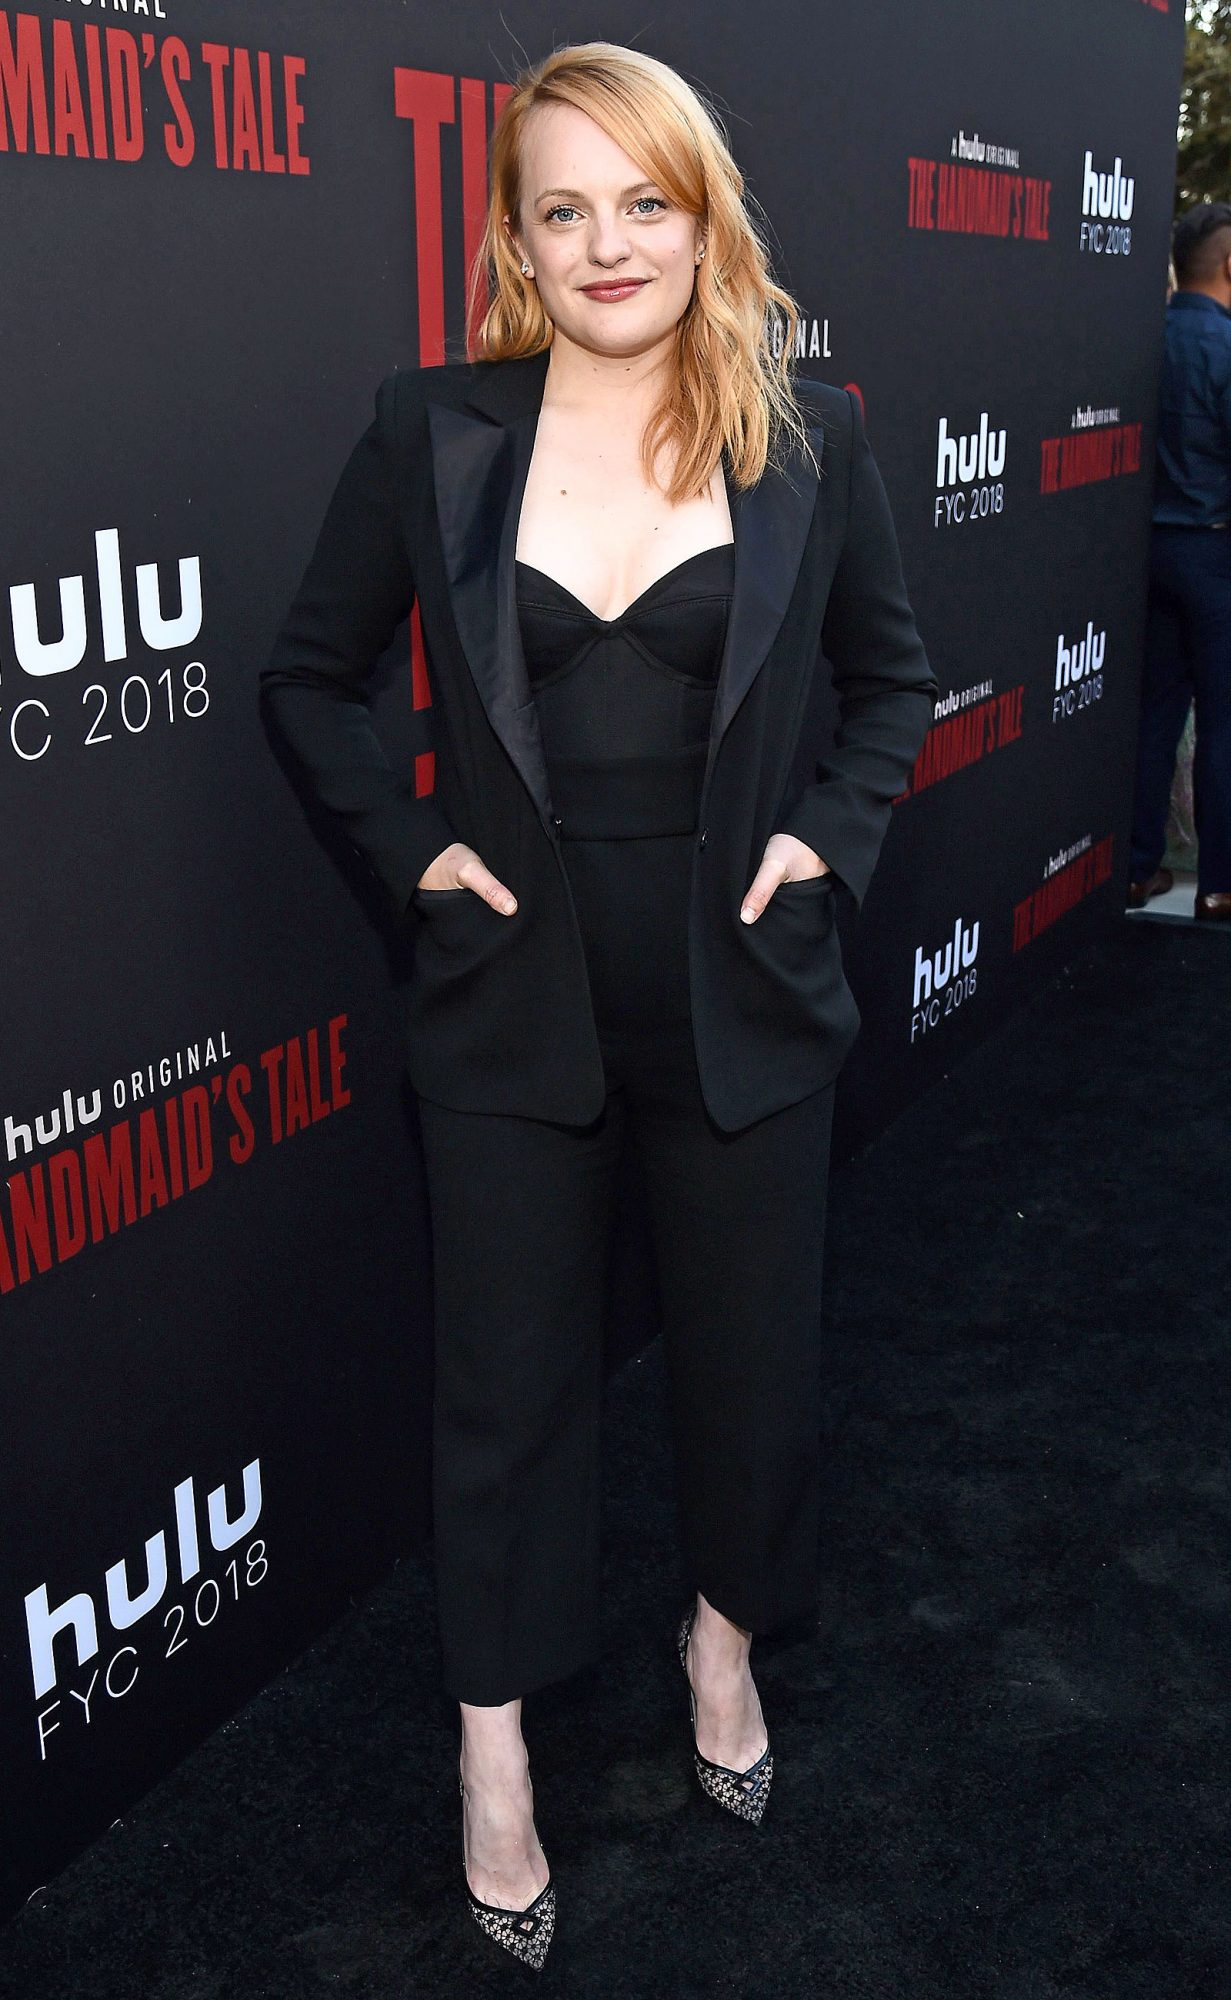 'The Handmaid's Tale' TV show finale, Arrivals, Los Angeles, USA - 09 Jul 2018